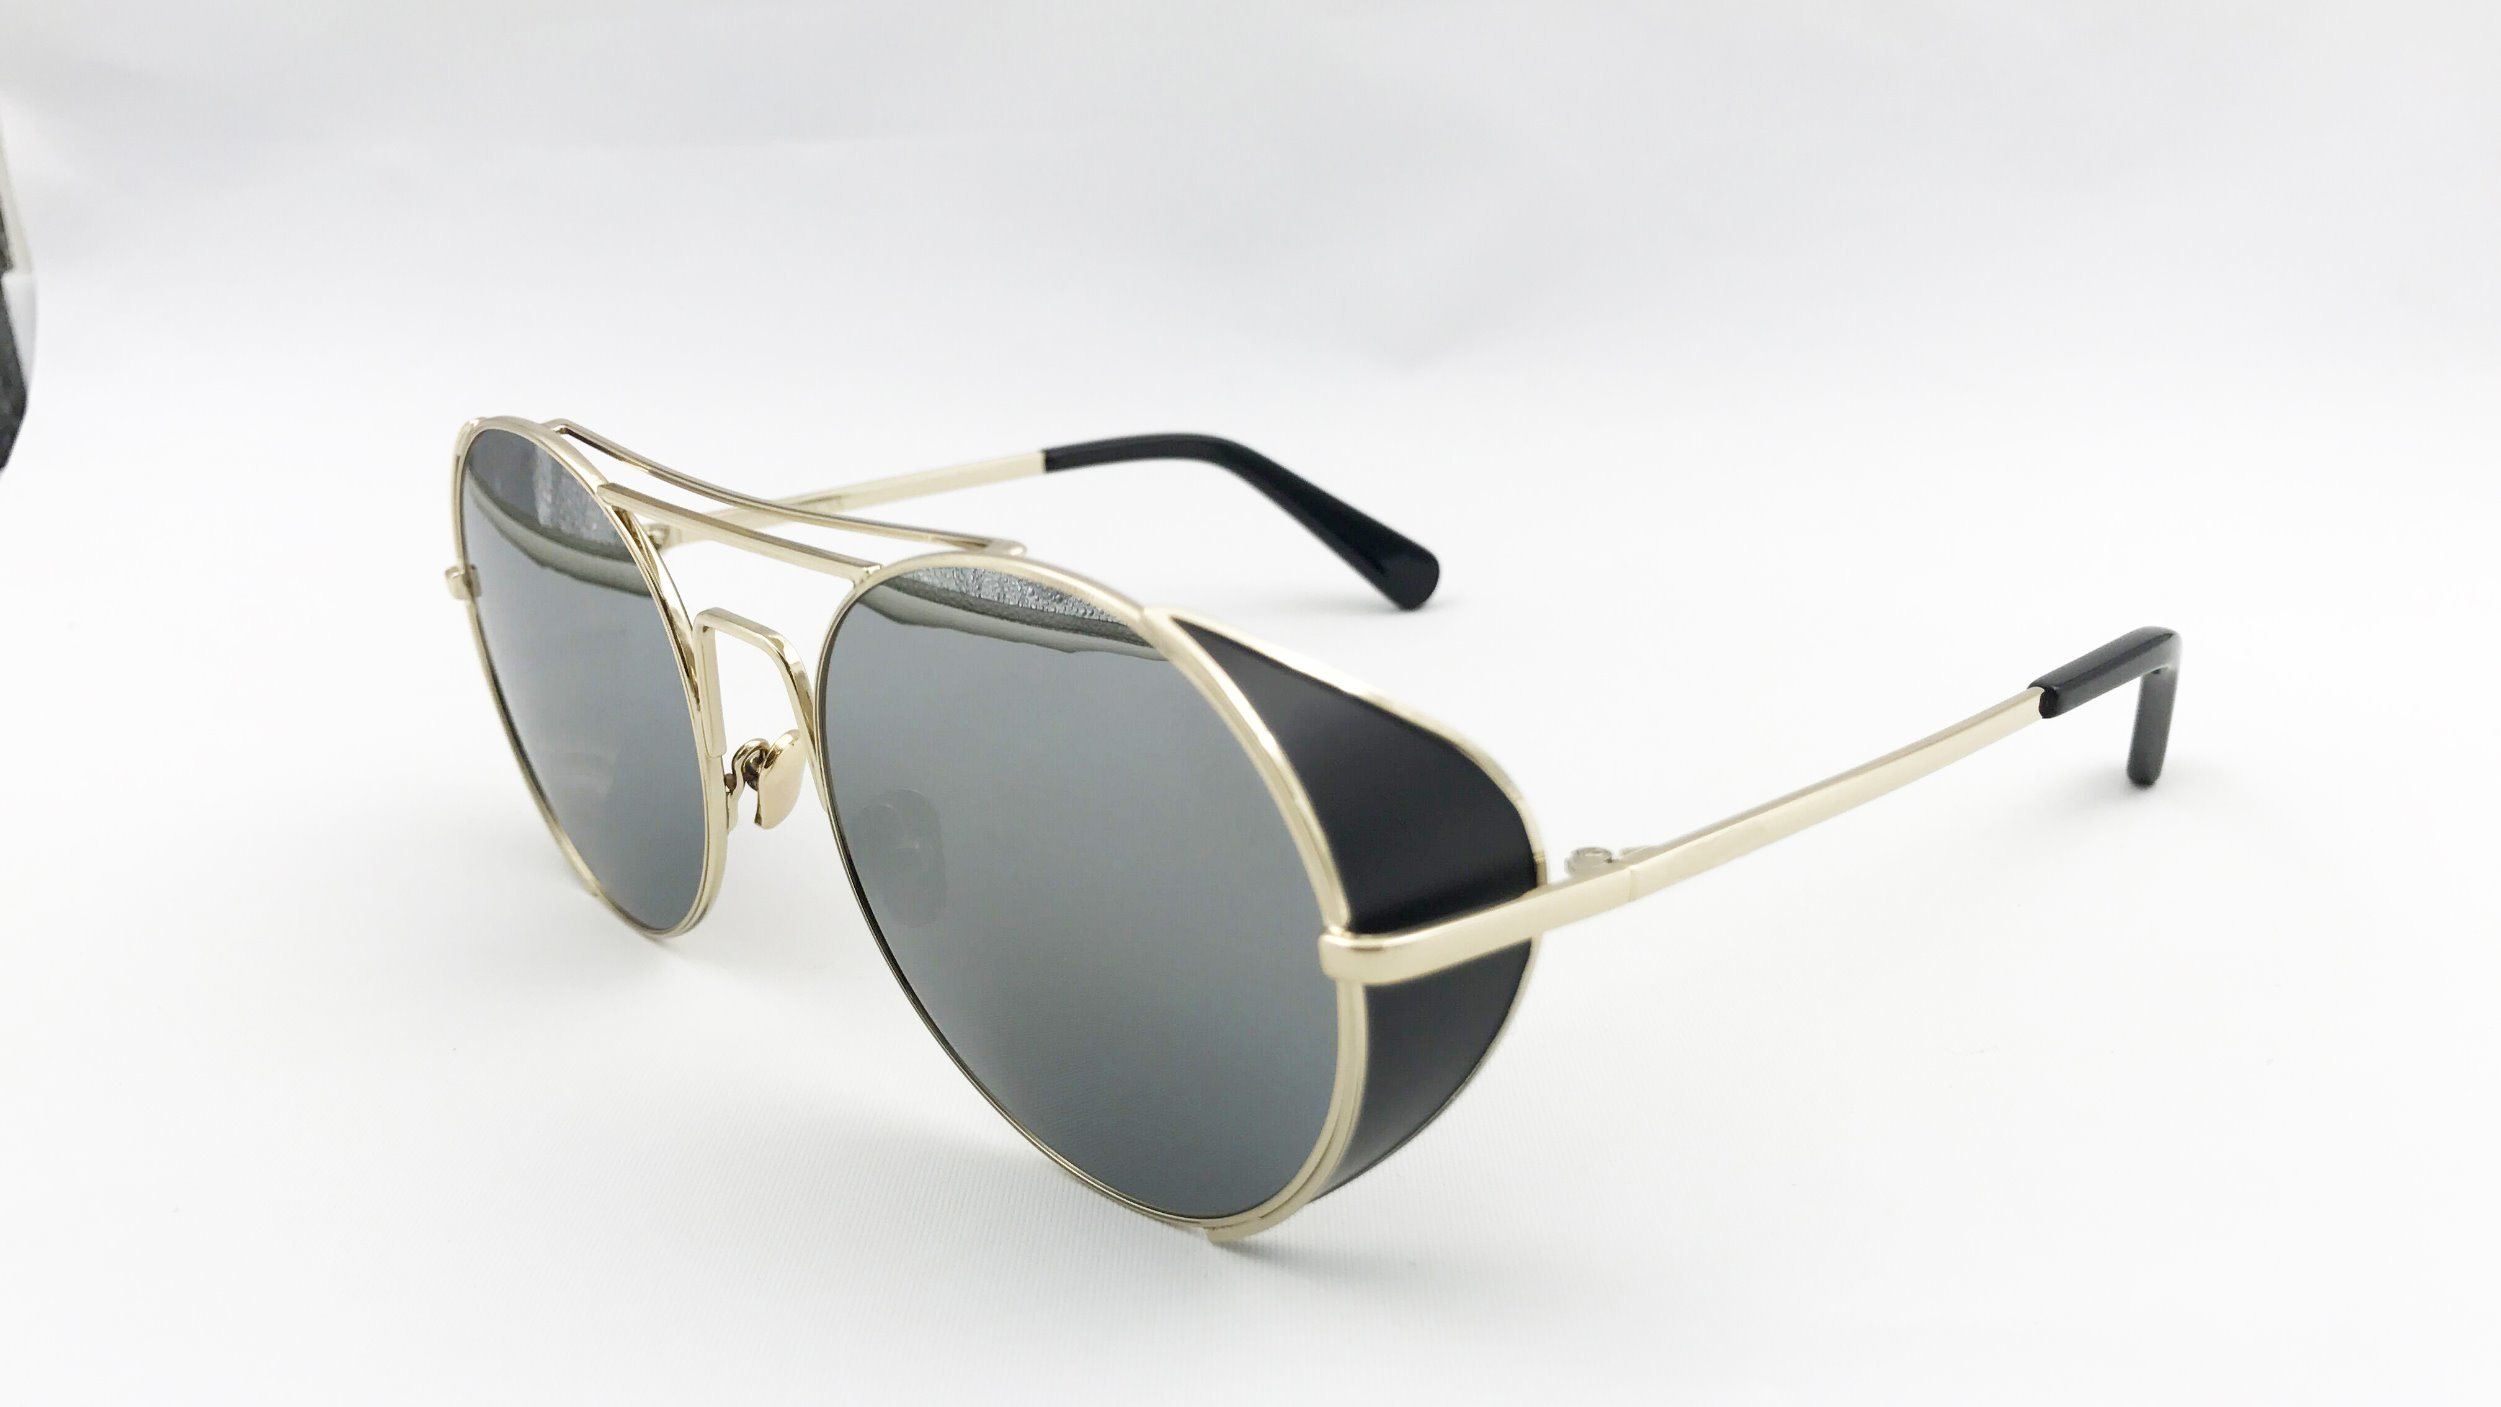 Unique Metal Sunglasses for Man and Lady. Eh1609